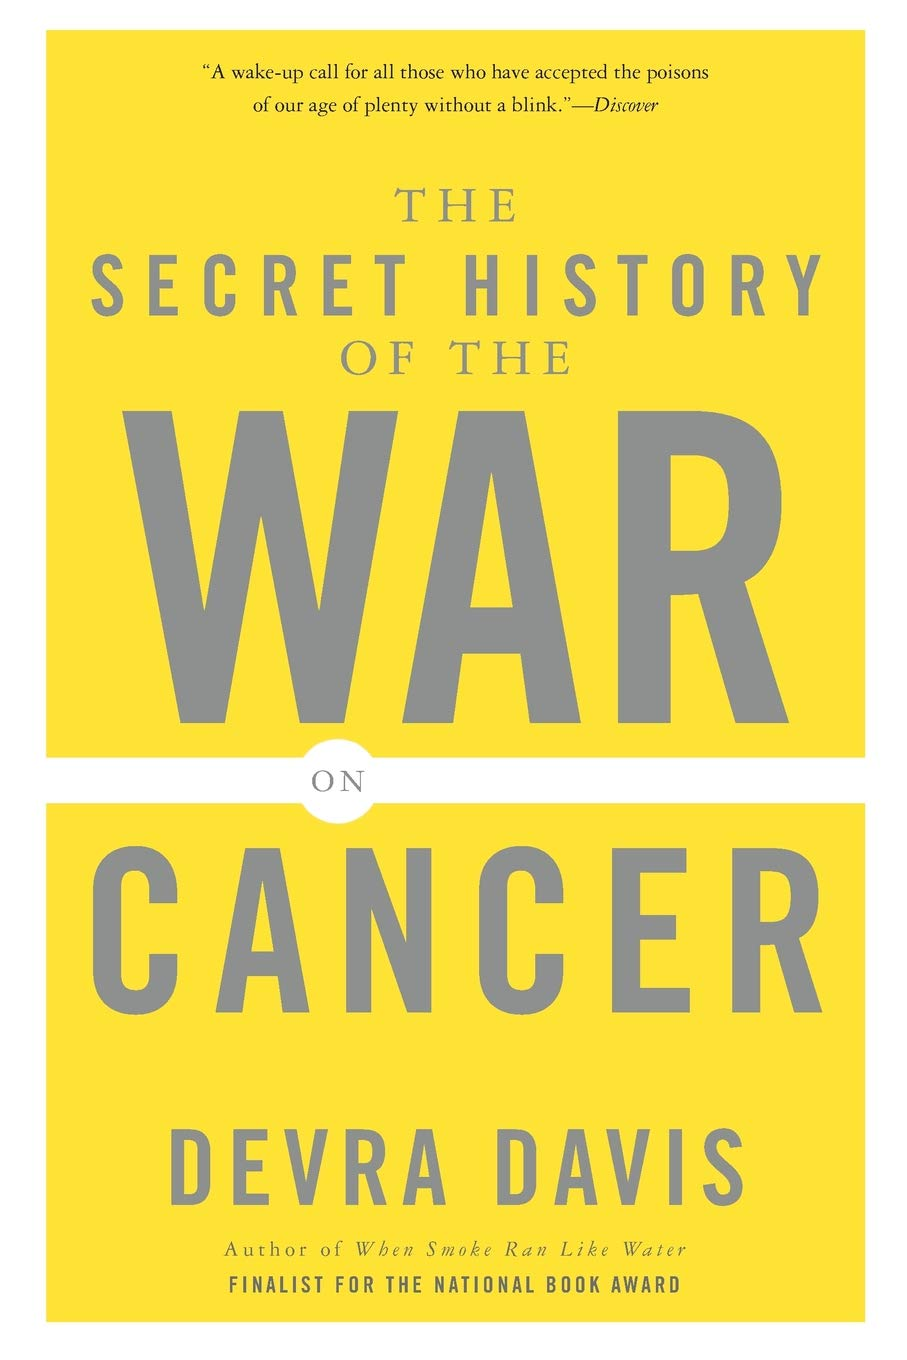 Book cover: Devra Davis 2007 Secret History of the War on Cancer